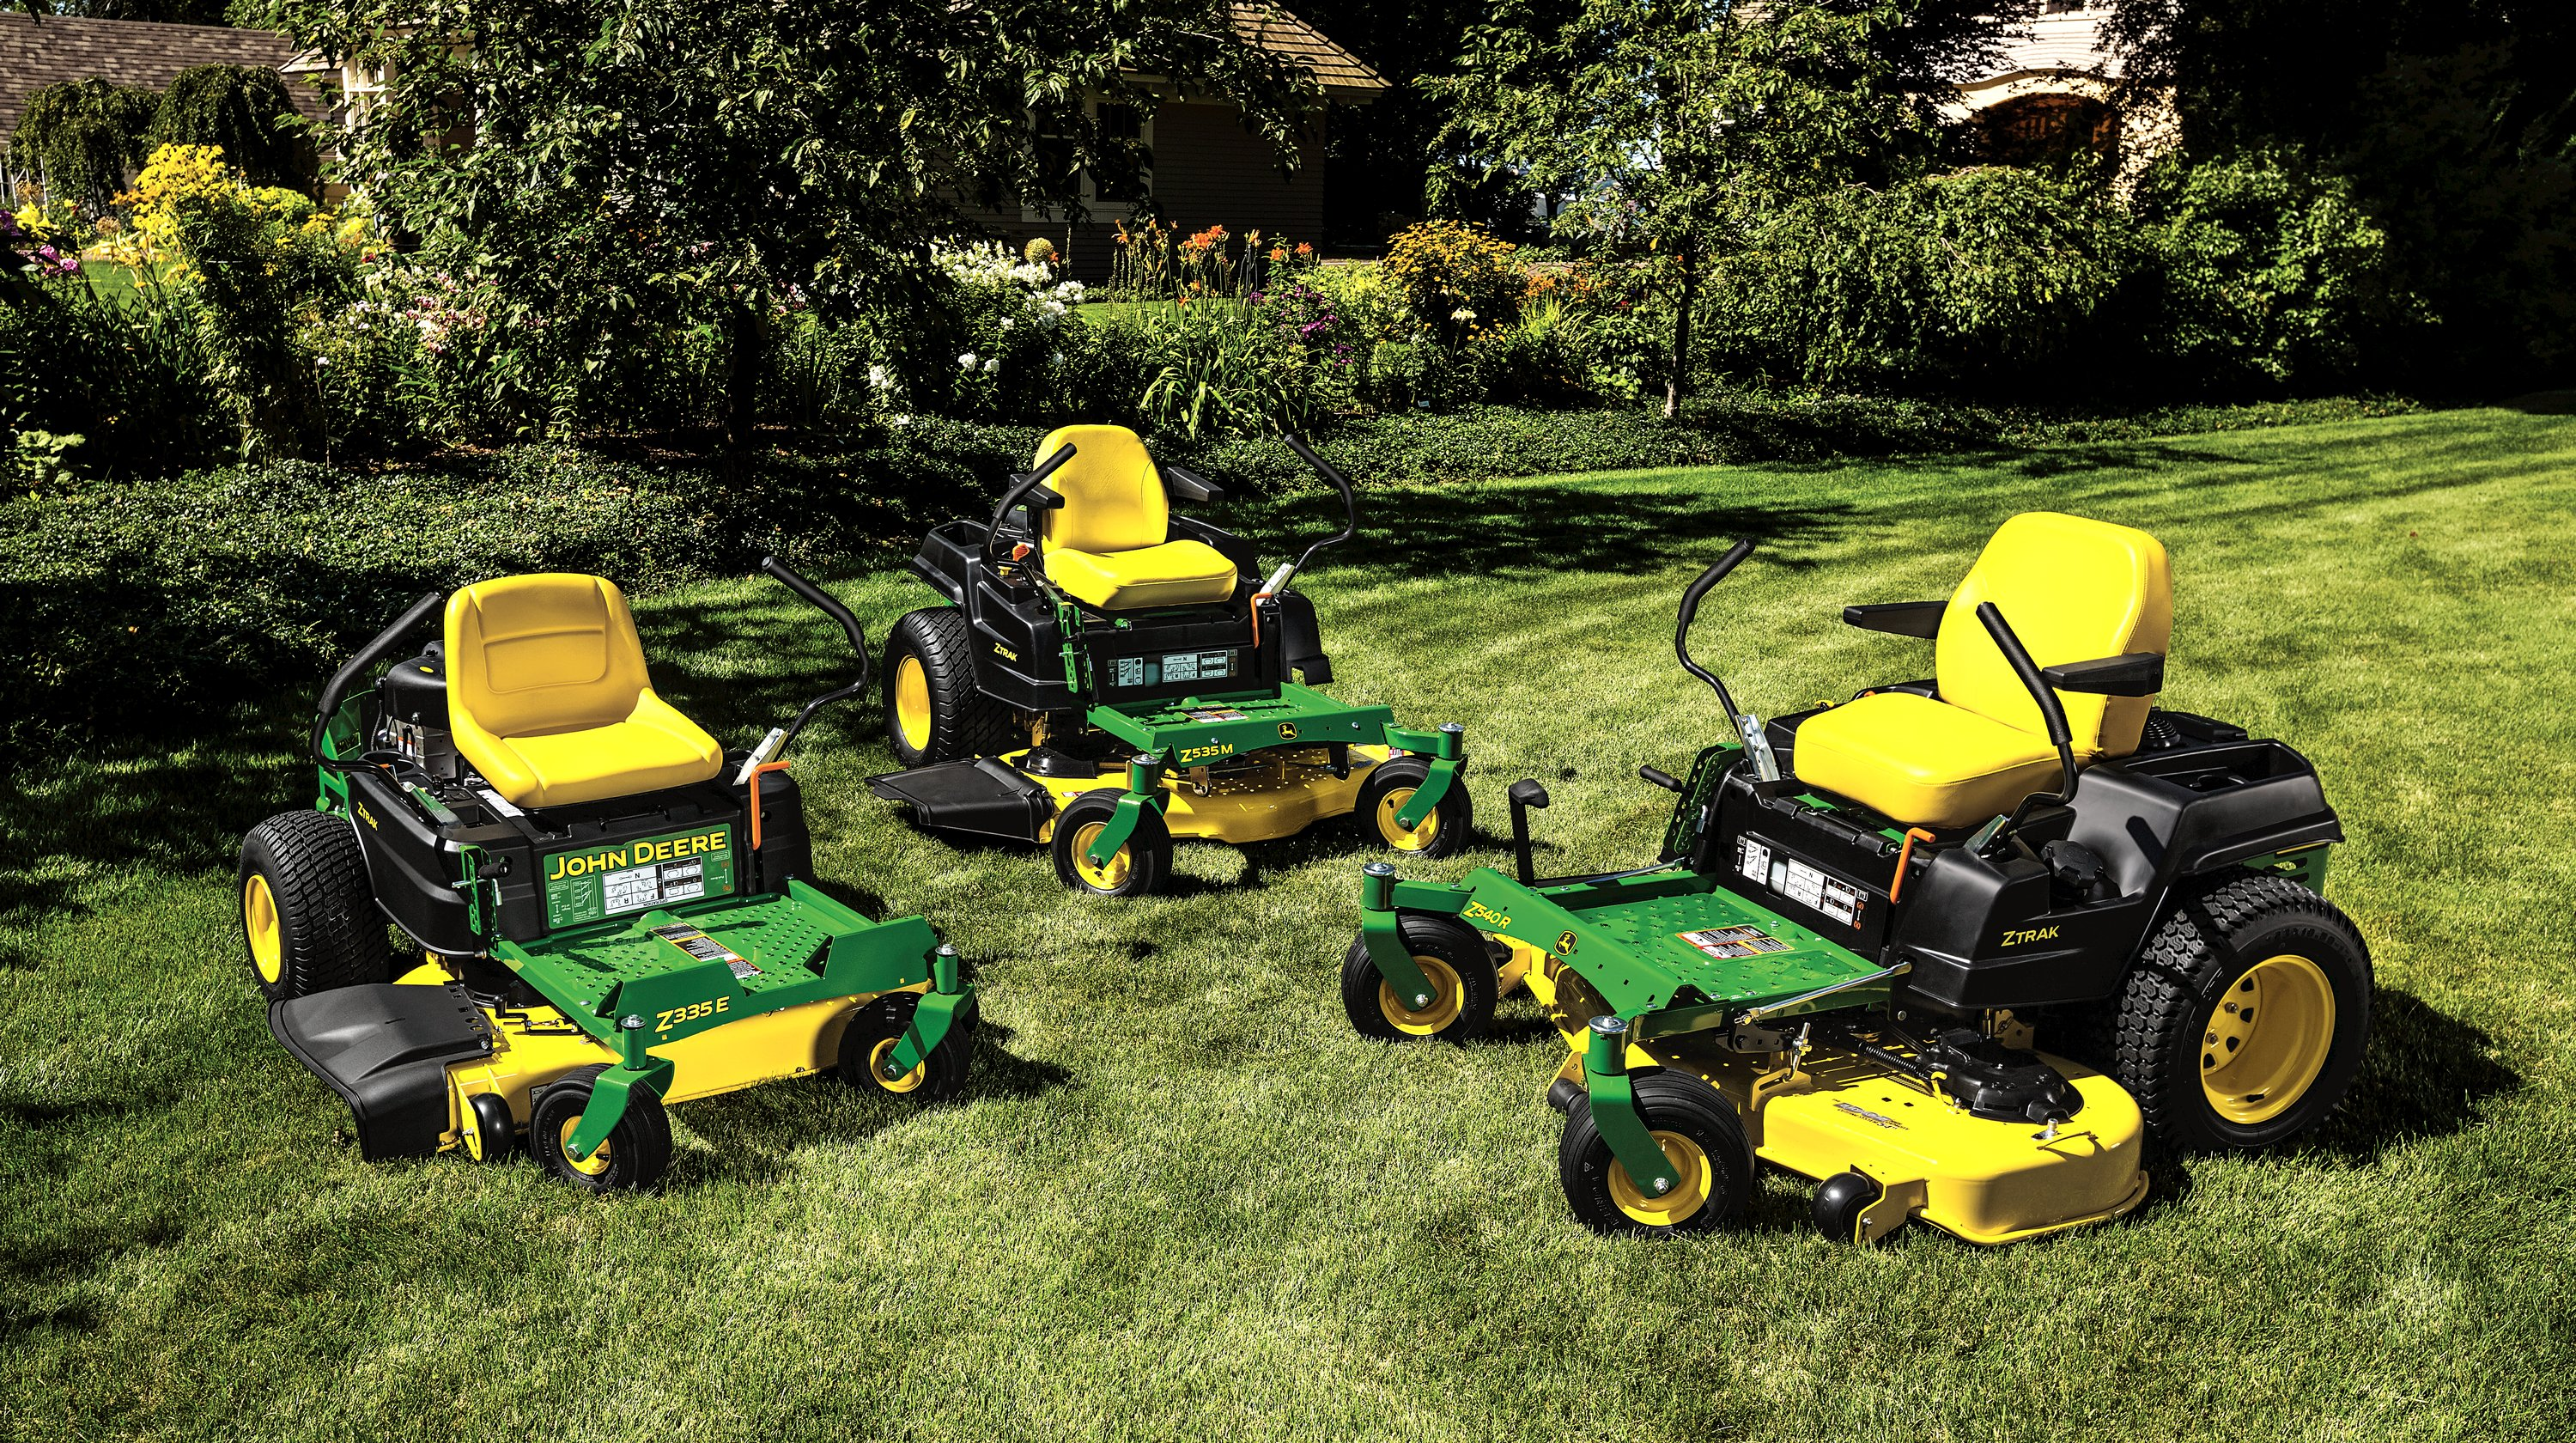 2016 ZTraks provide a new mower deck option and enhanced ergonomics.